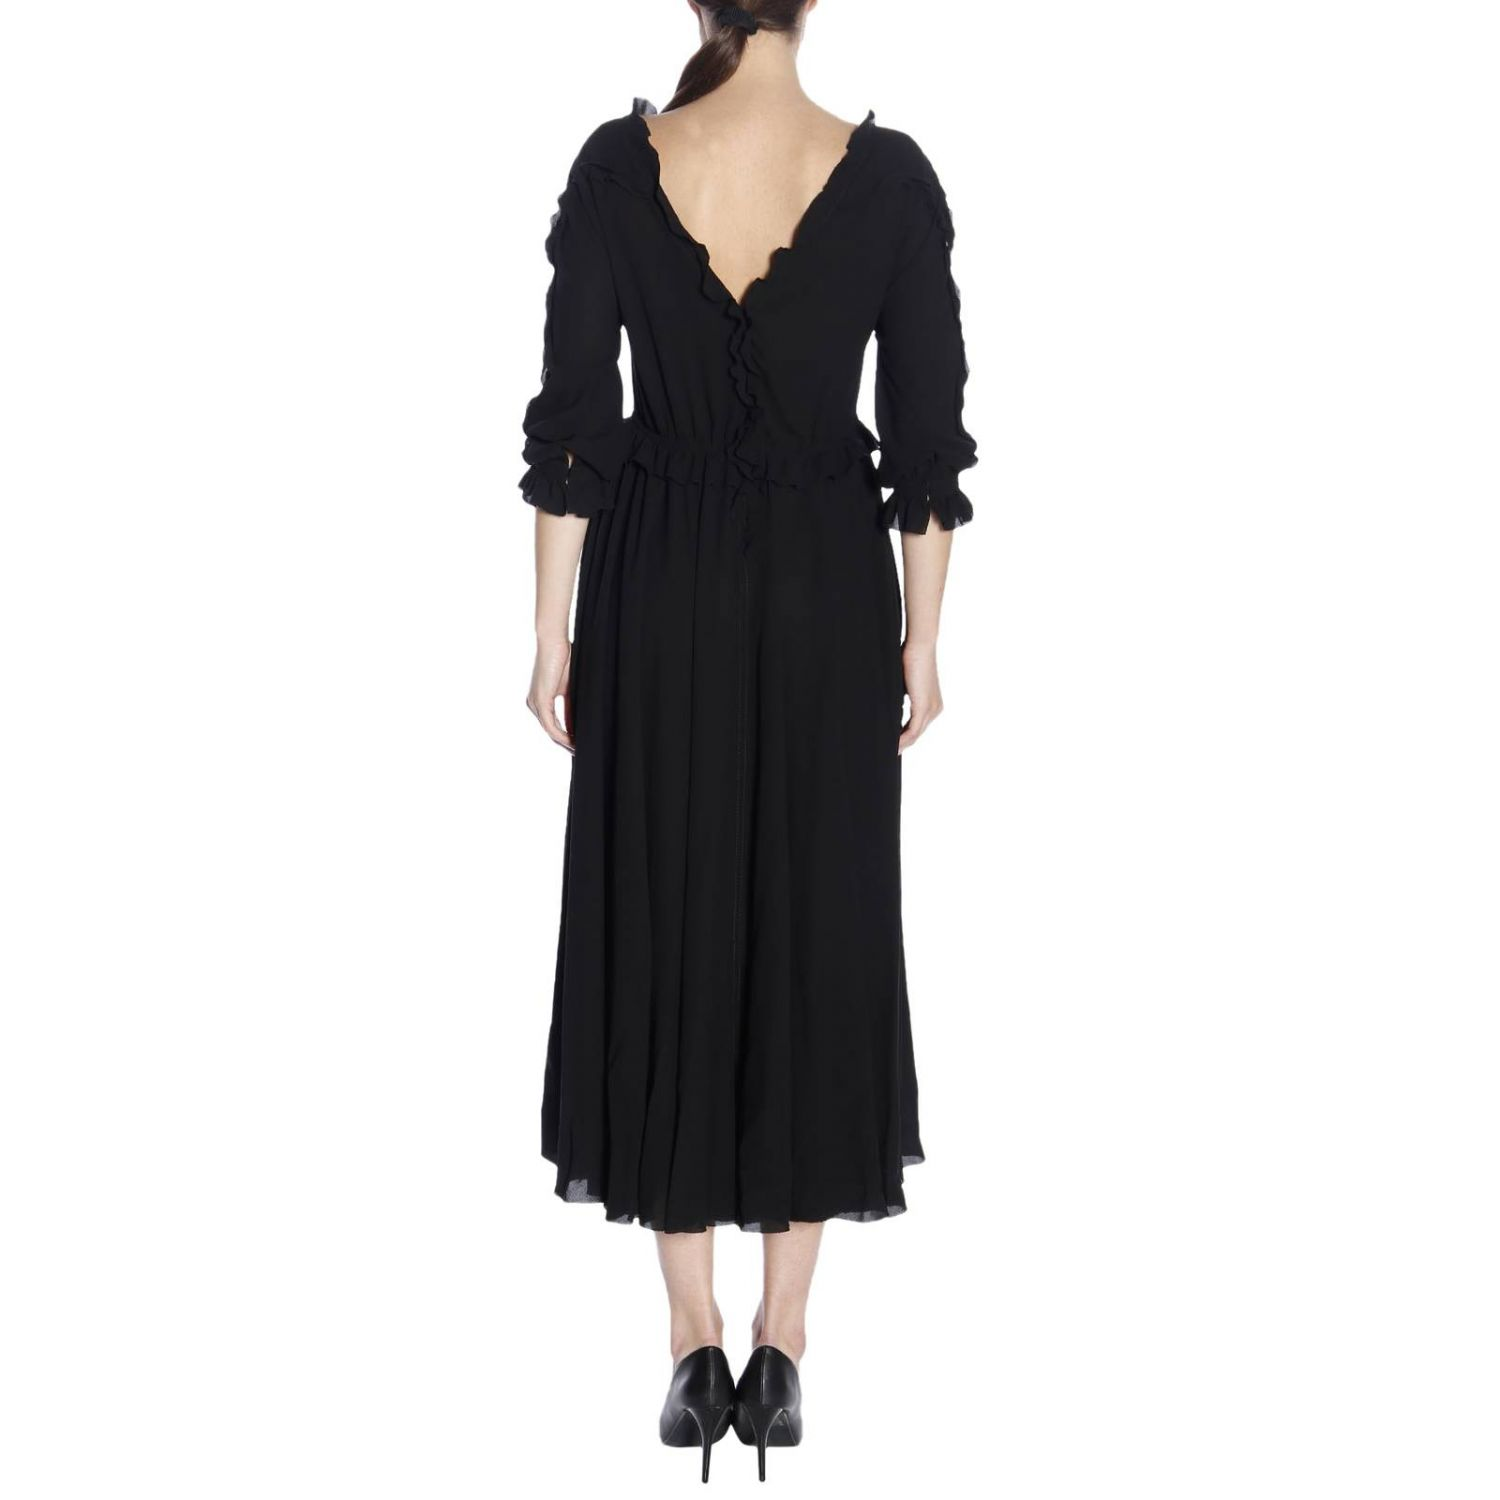 Dress women Bottega Veneta black 3